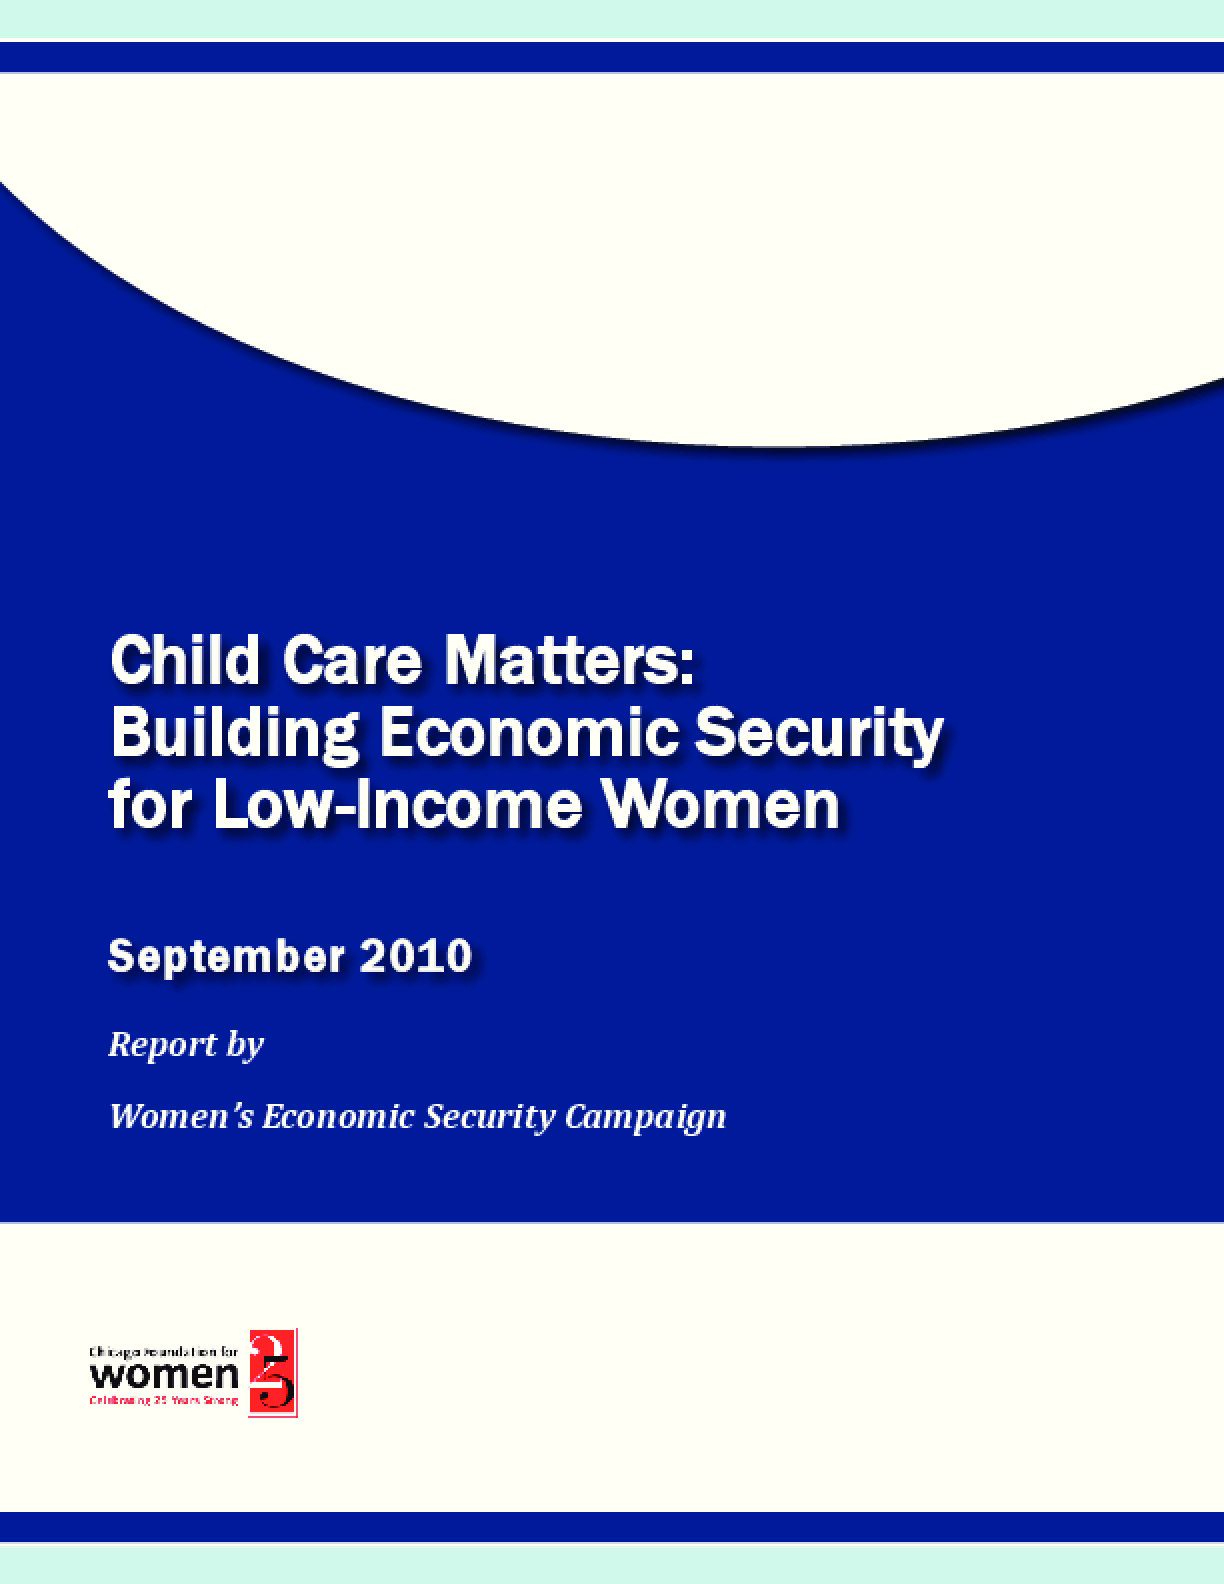 Child Care Matters: Building Economic Security for Low-Income Women